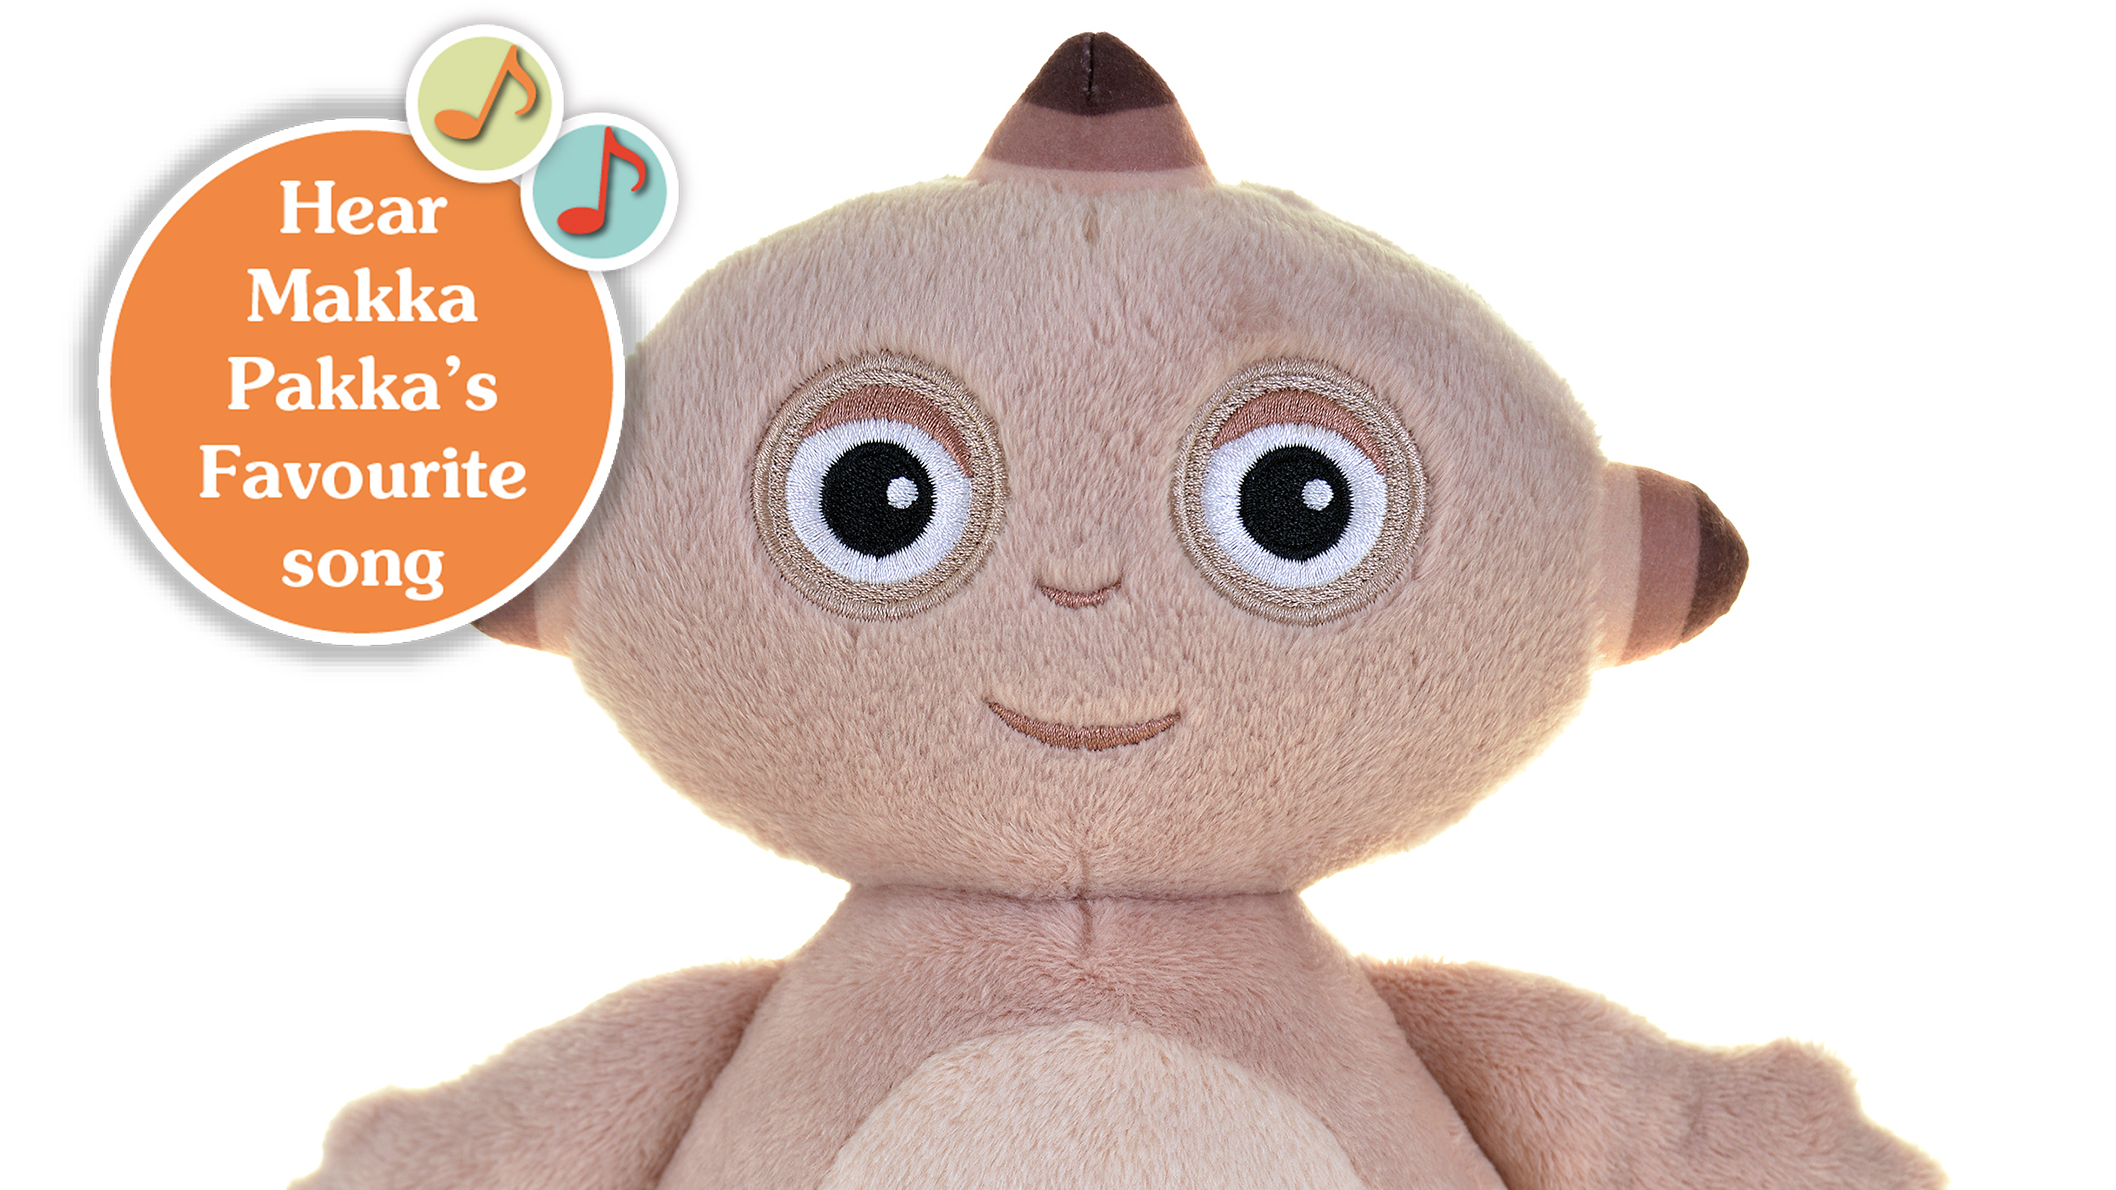 A close-up of a beige toy with an oval shaped head, in front of a white background.